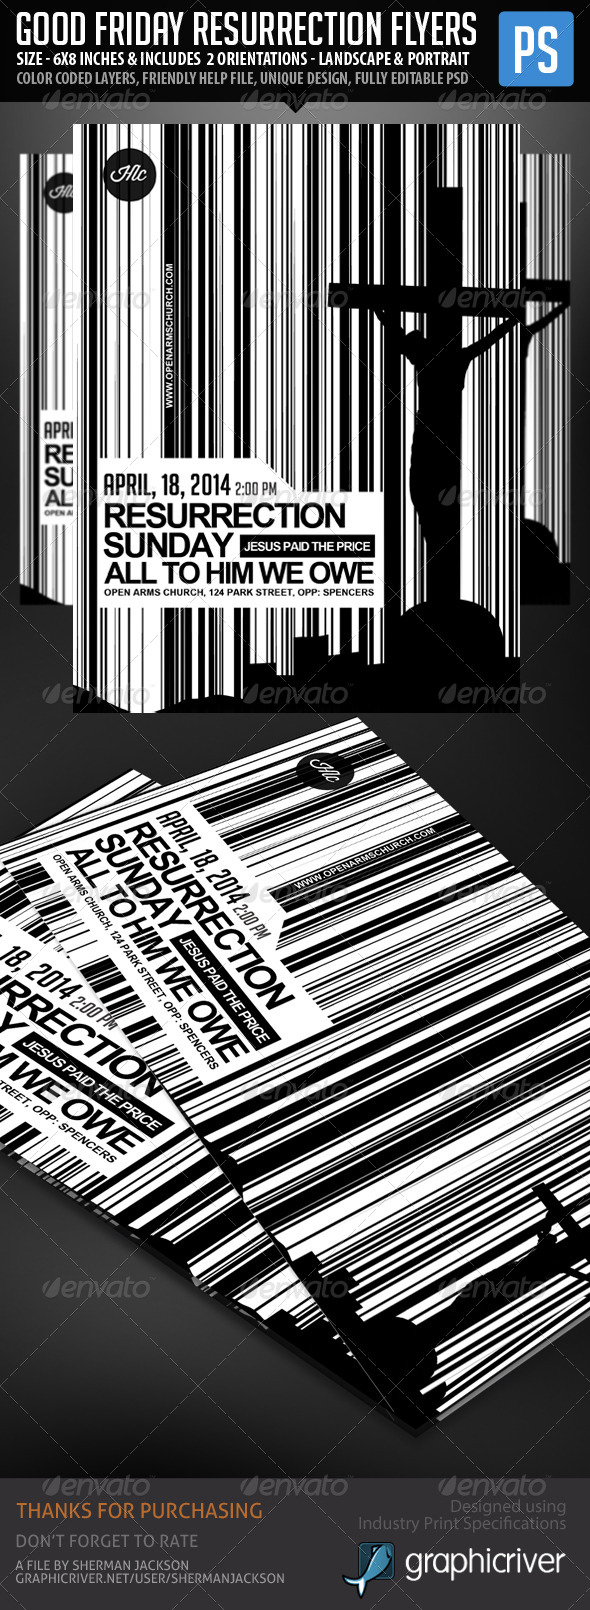 GraphicRiver Good Friday & Resurrection Day Flyers 6845336